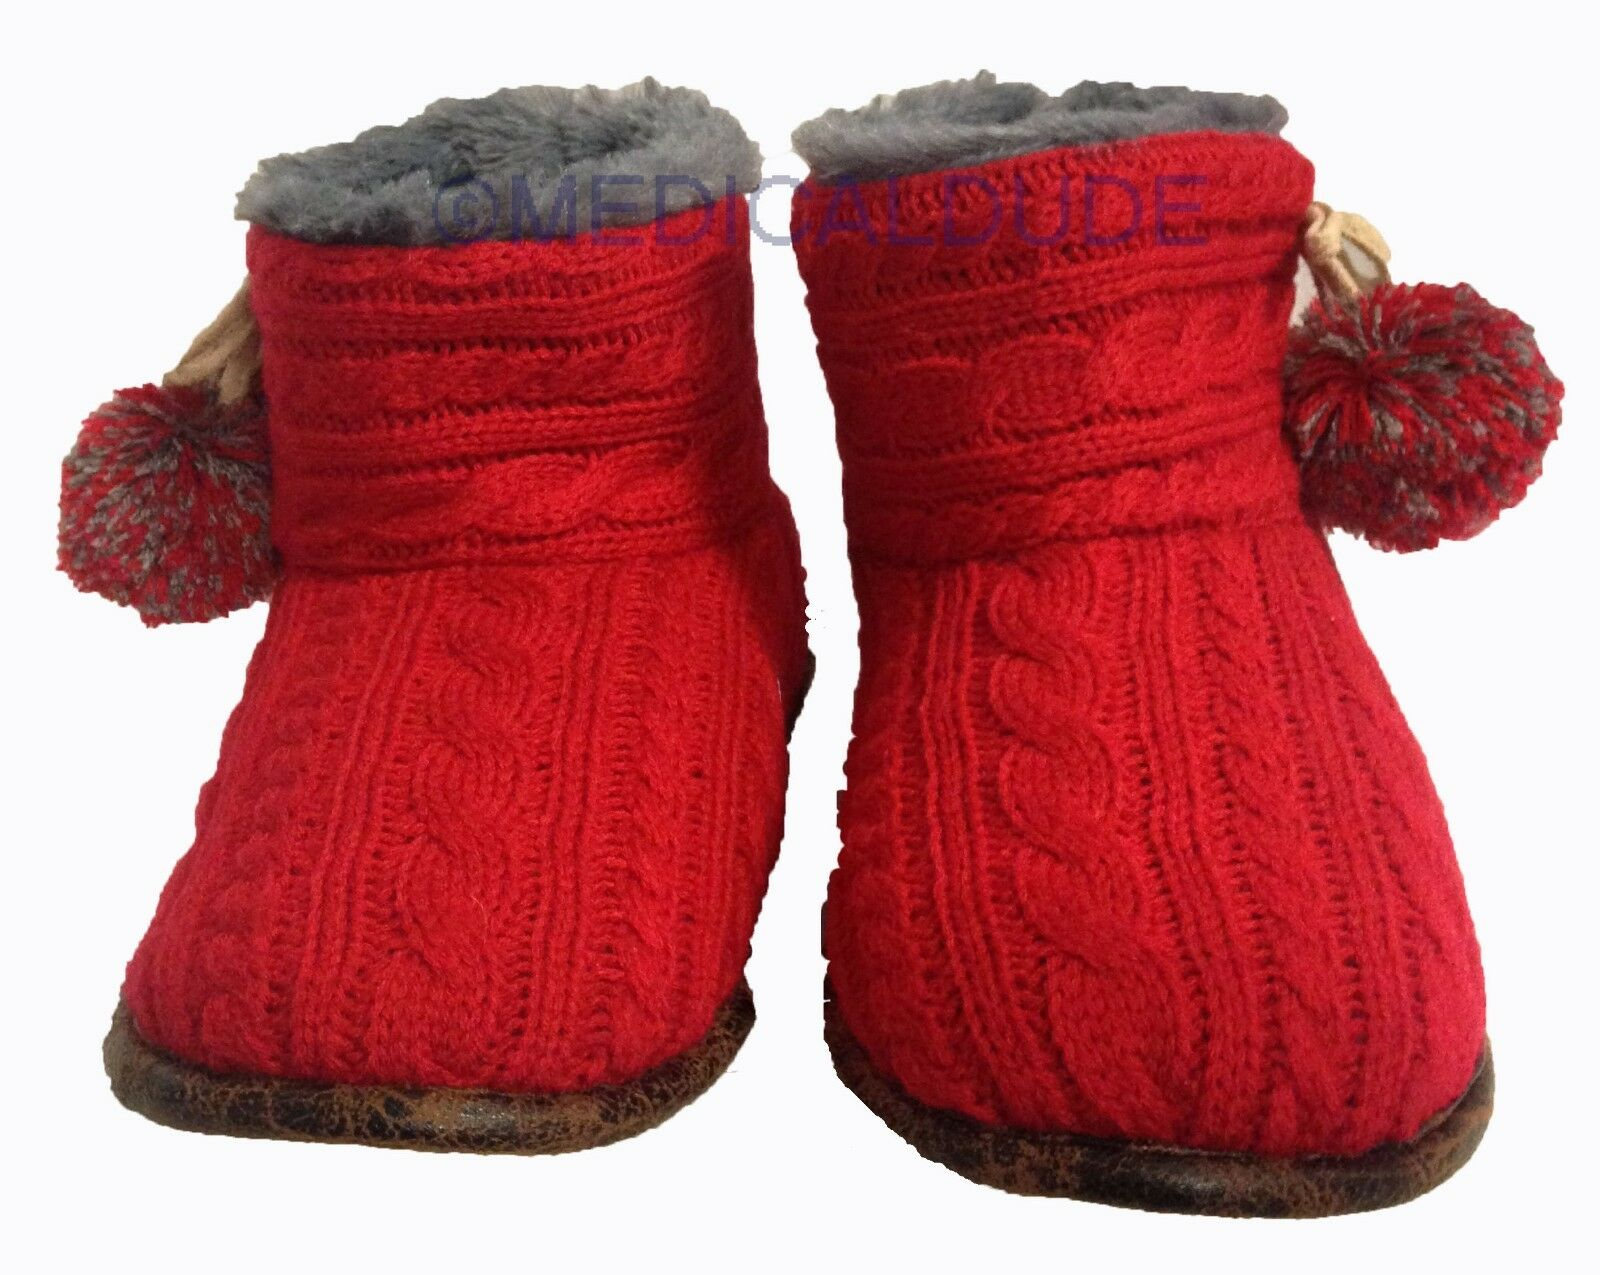 PJ Couture Womens Cable Knit Bootie Indoor/Outdoor Slippers Red Large 9/10 - NWT